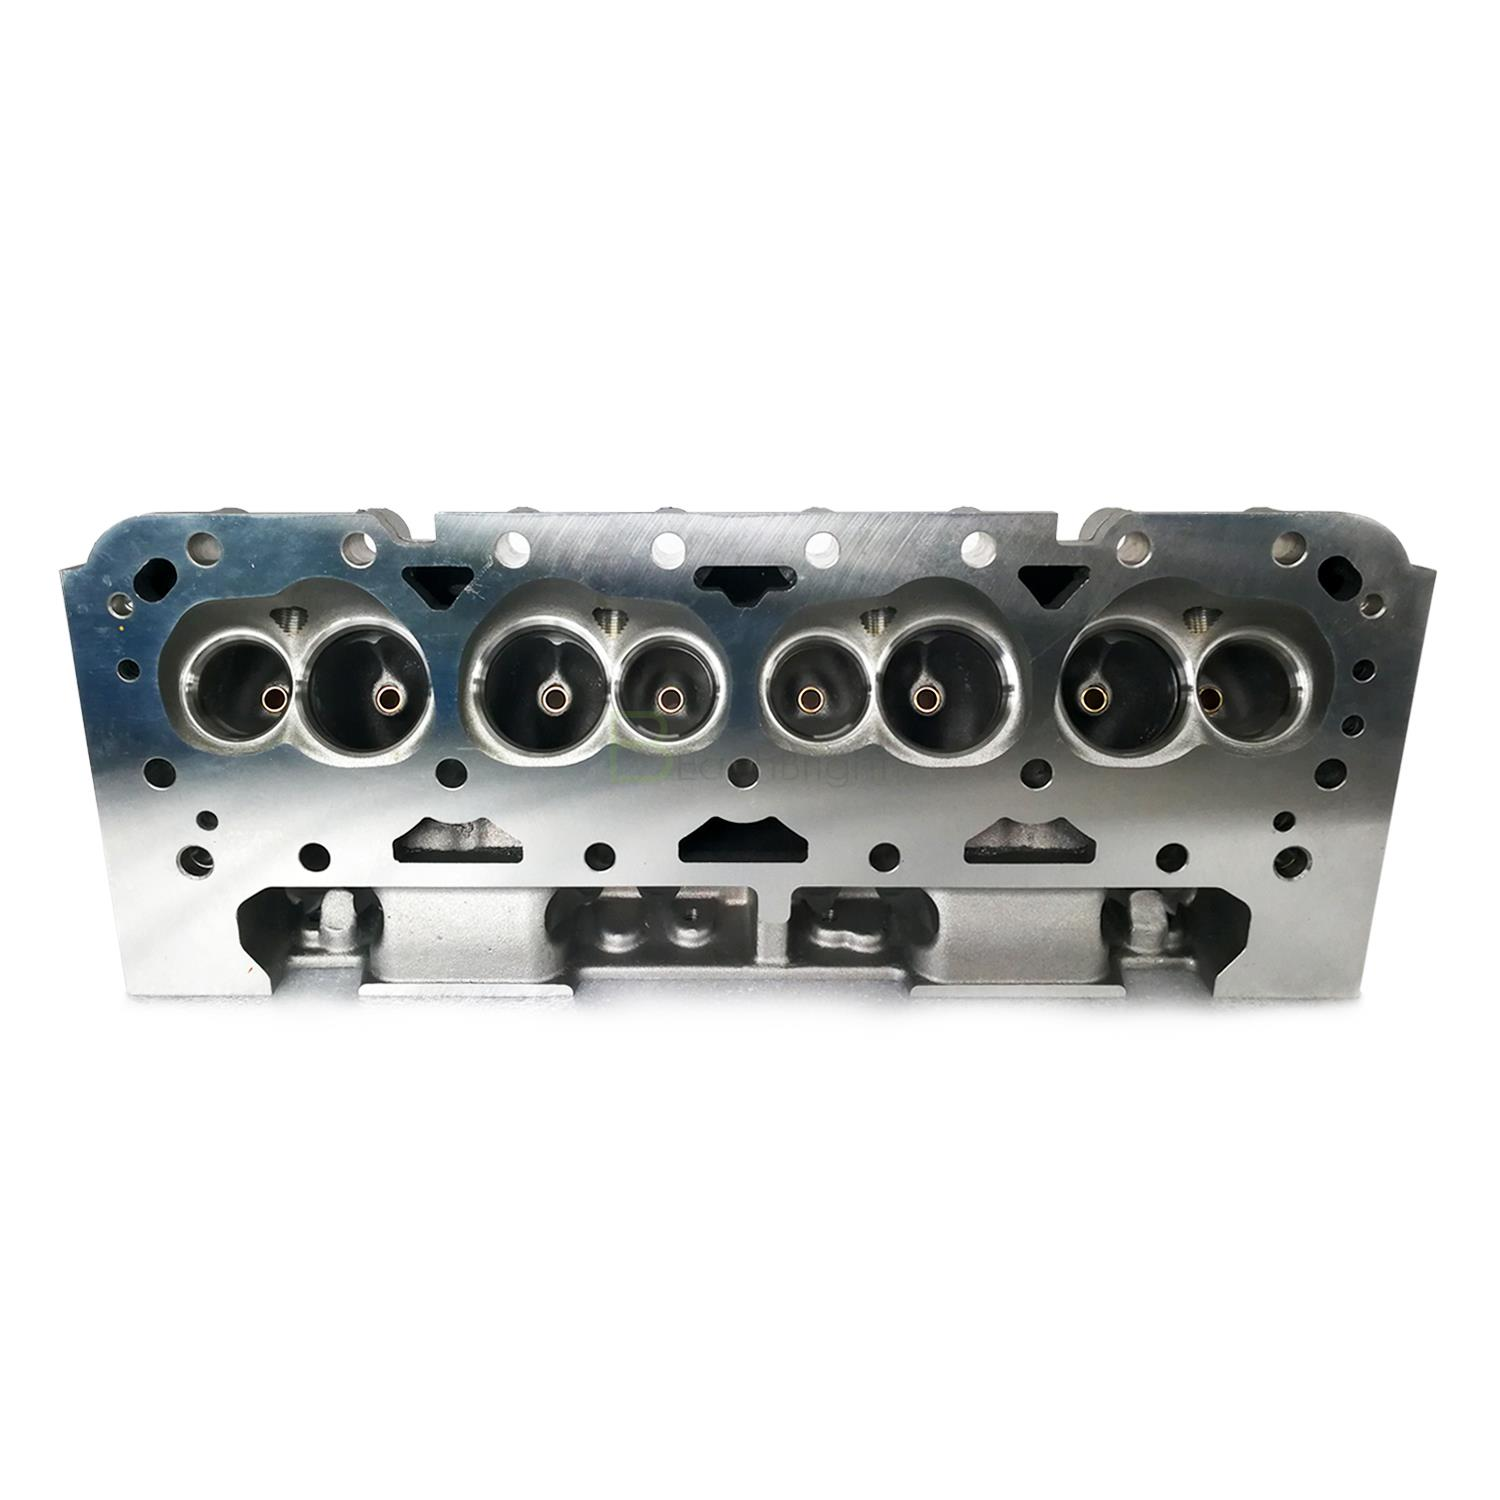 New Aluminum Cylinder Head Fits Small Block Chevy SBC 350